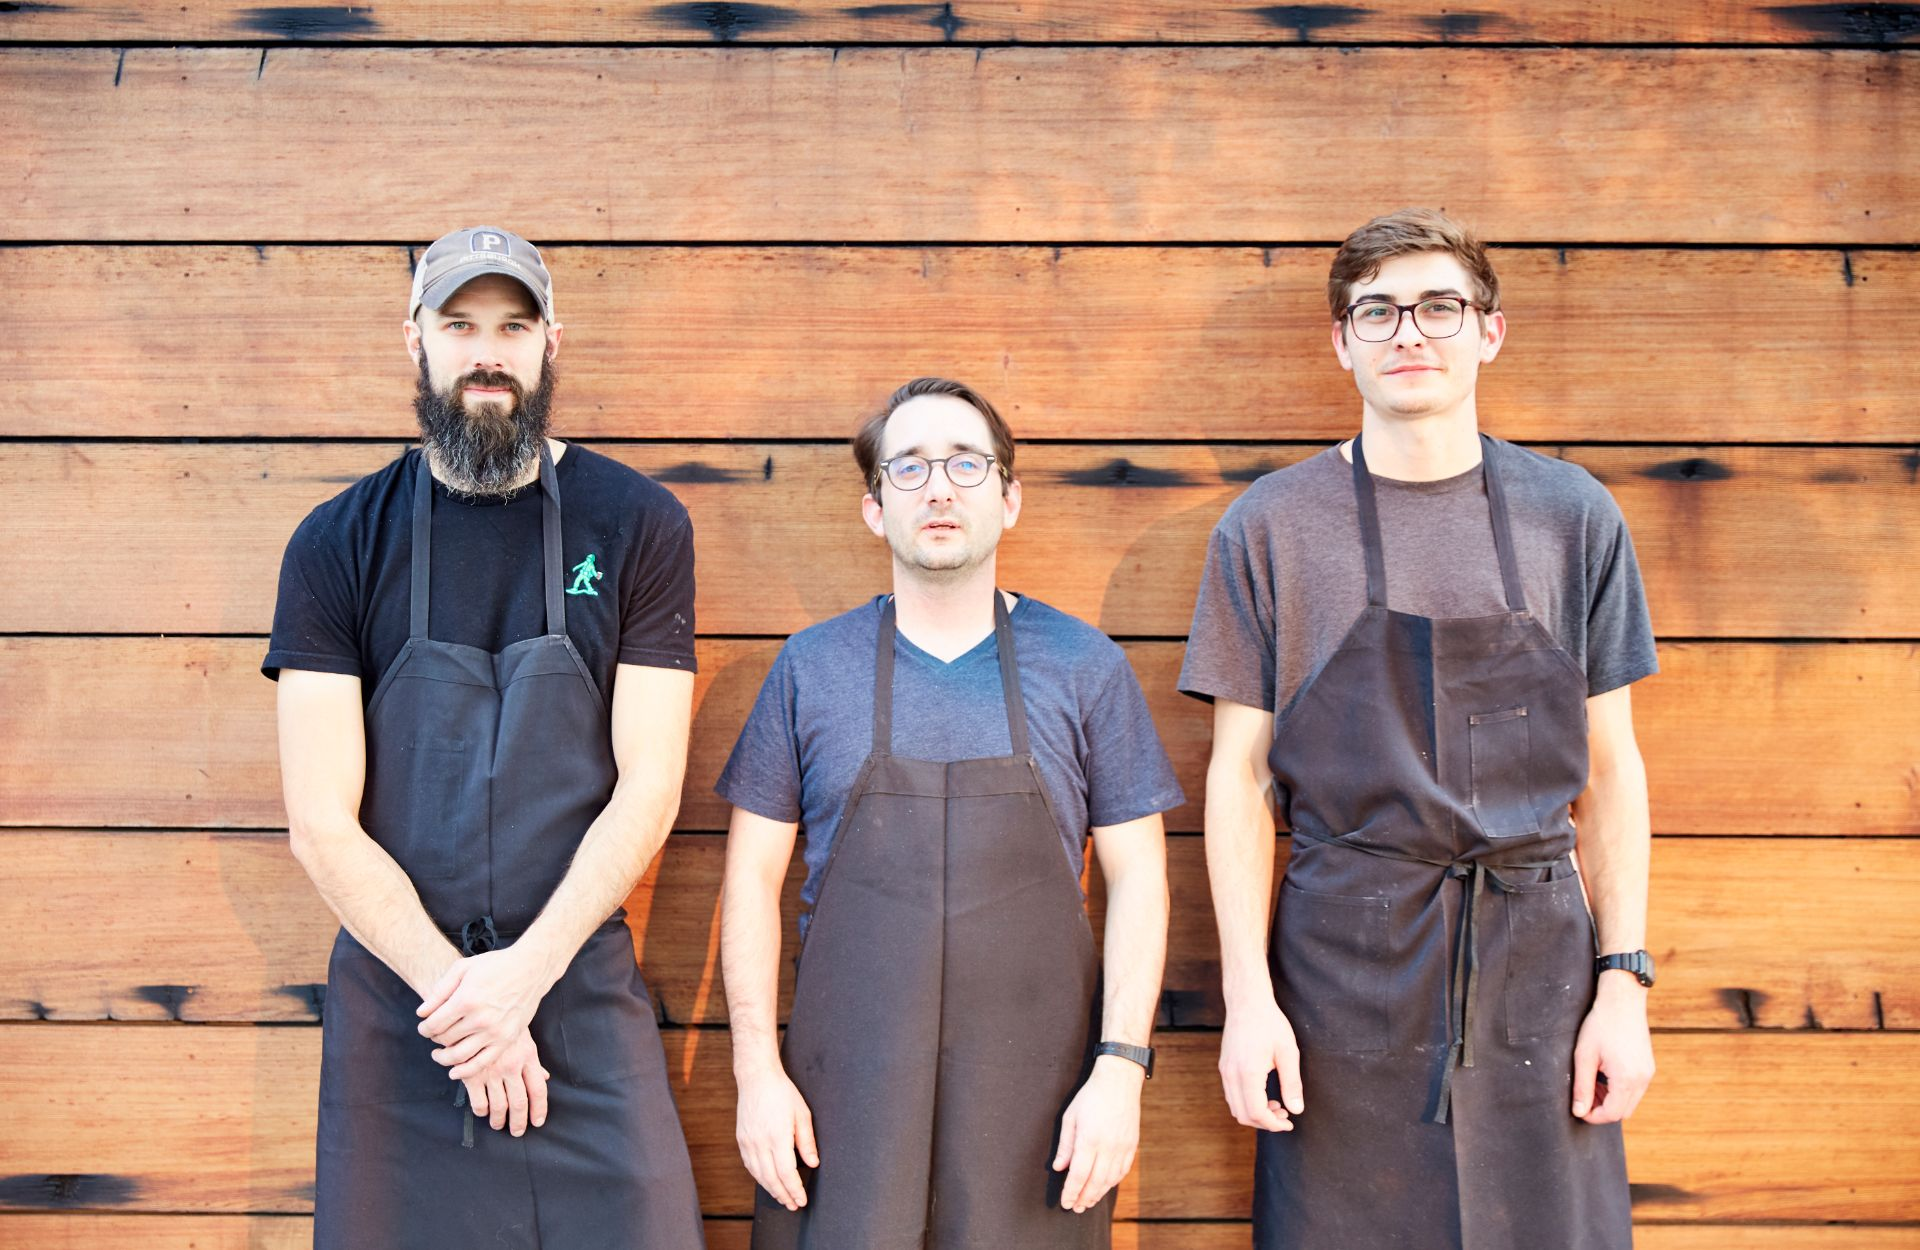 Three chefs wearing aprons posing for a picture in front of a wood wall